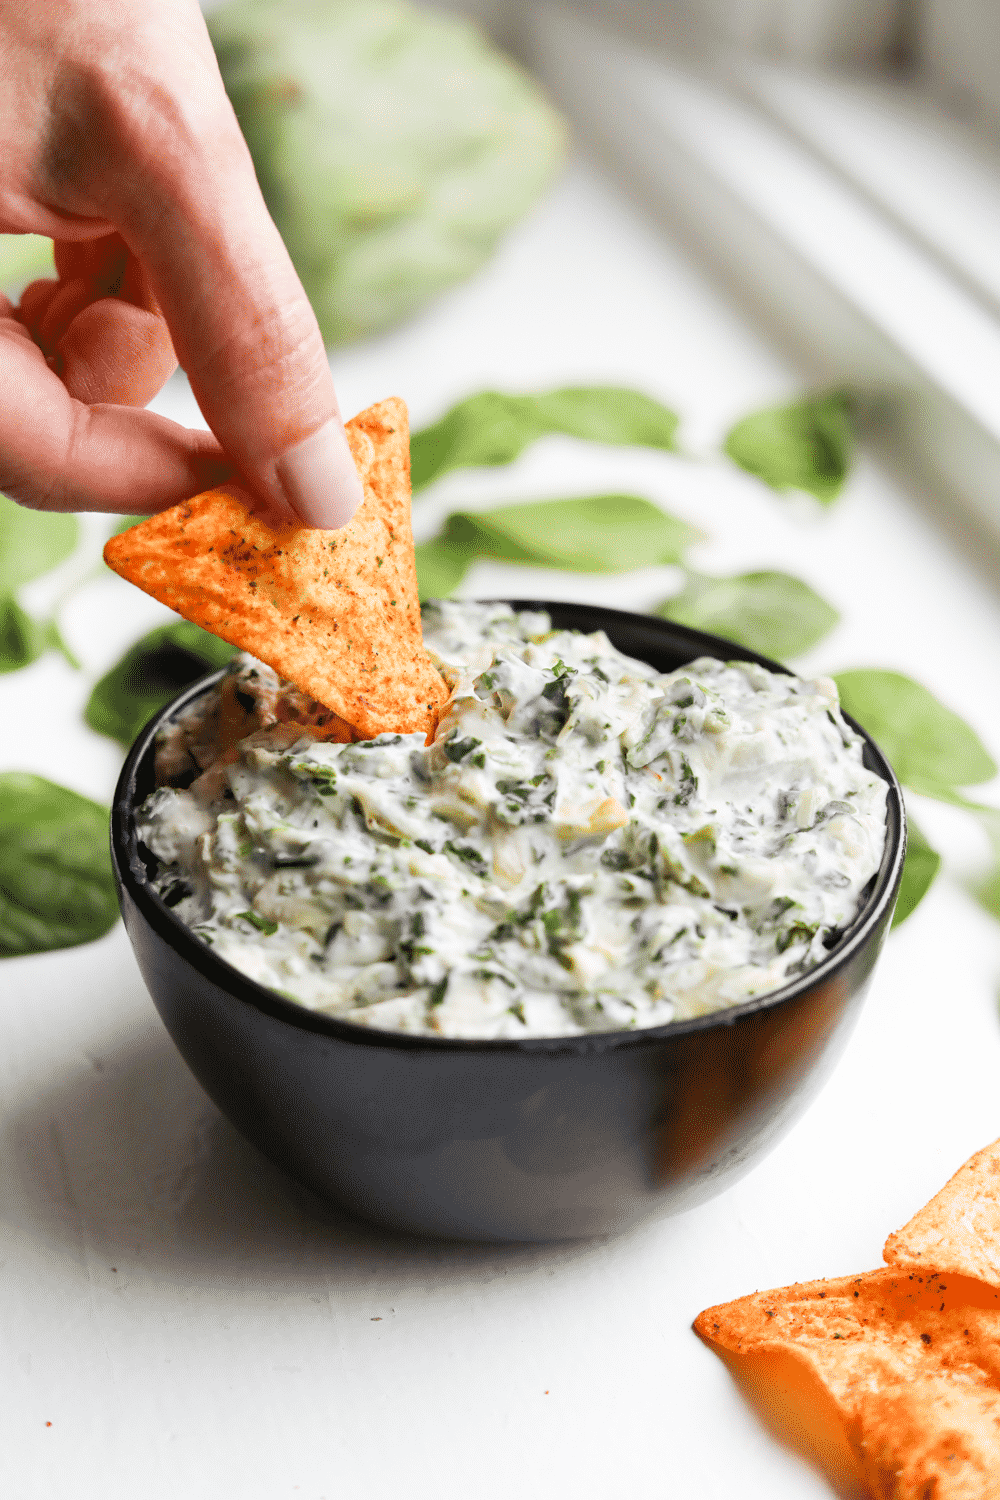 A chip about to be dunked it a bowl of keto dip